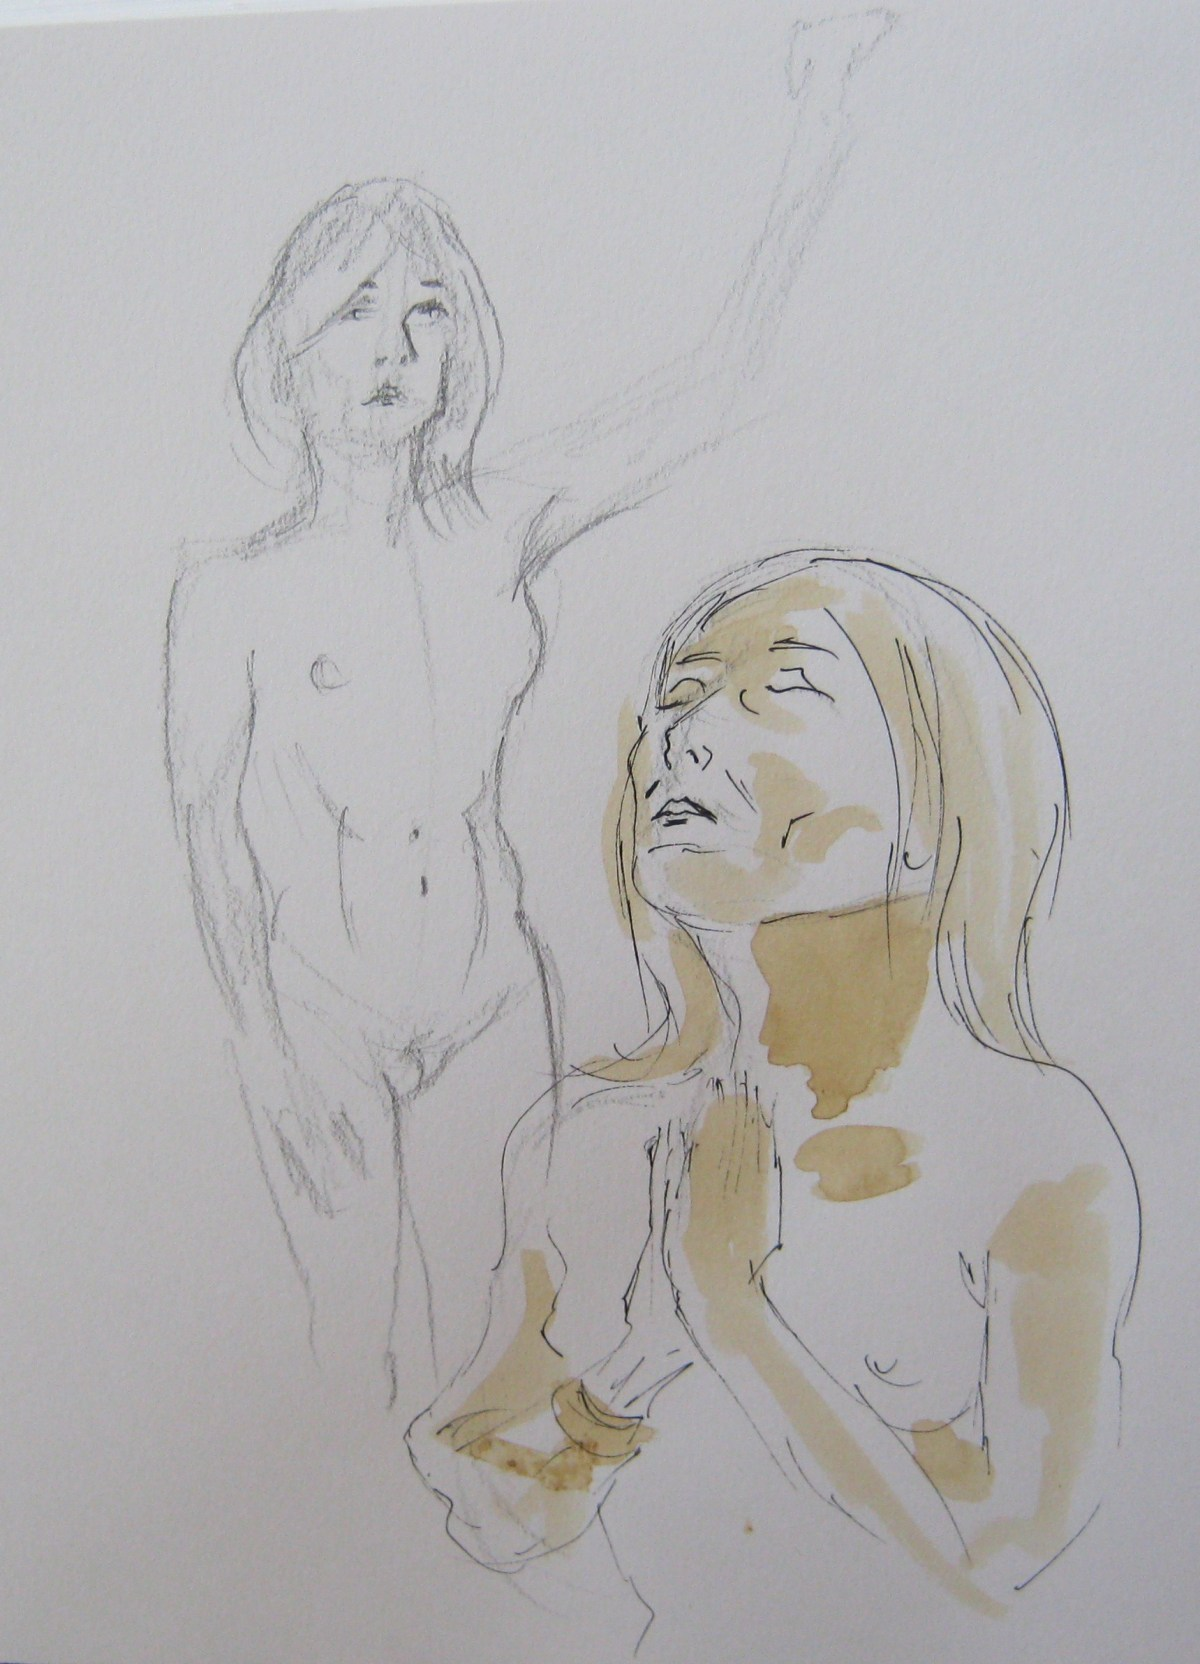 Two sketches of Jillian page by Paul Davidson, one of the hosts of the Figure Drawing workshop on body acceptance in Montreal on Oct. 20, 2013.